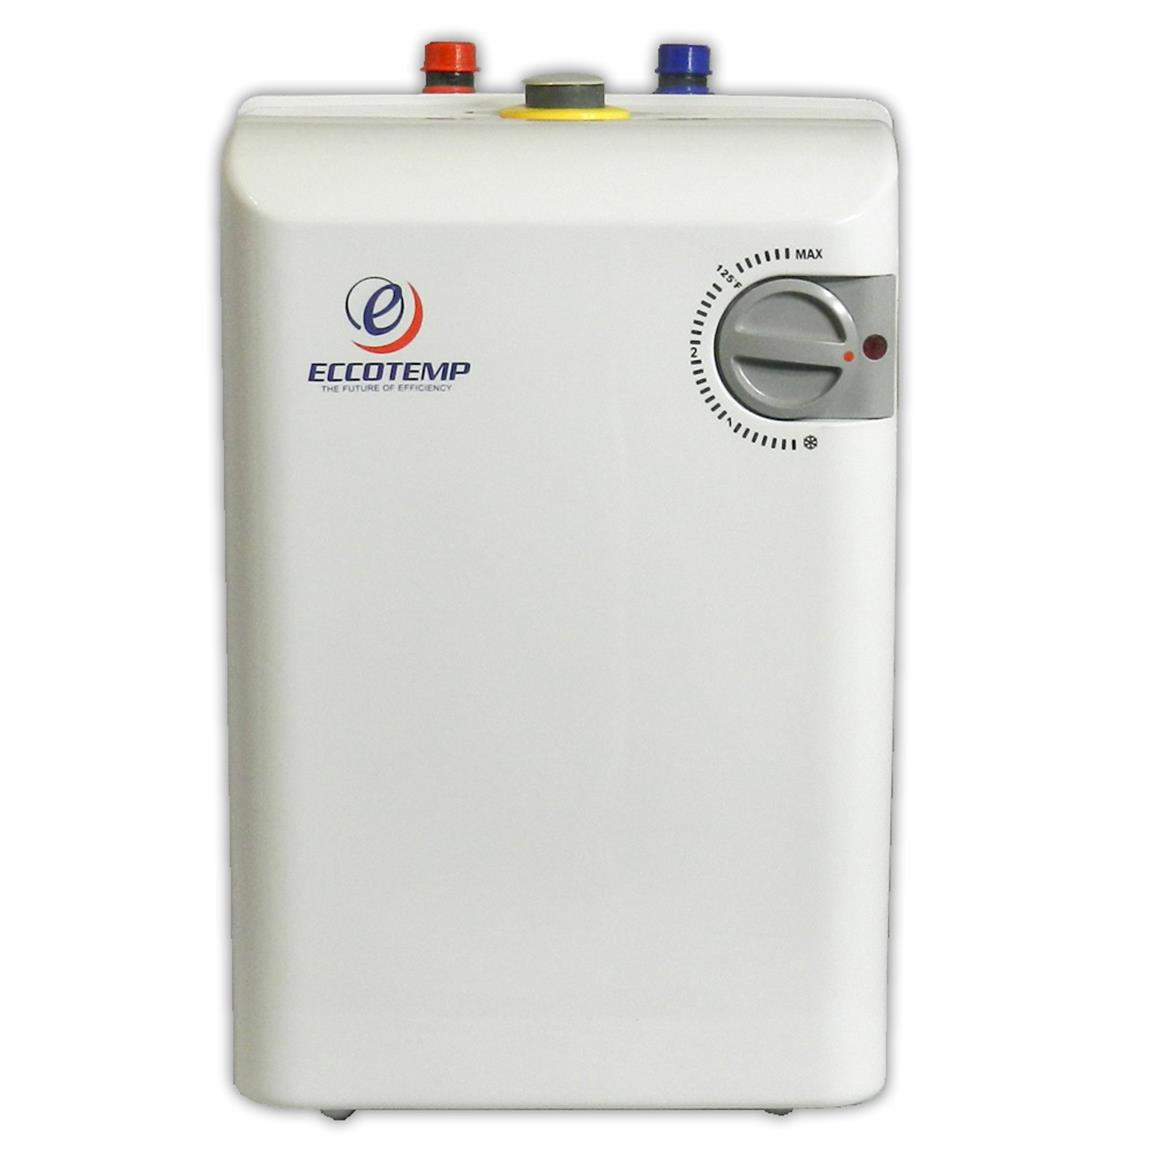 Eccotemp Mini Tank Electric Water Heater